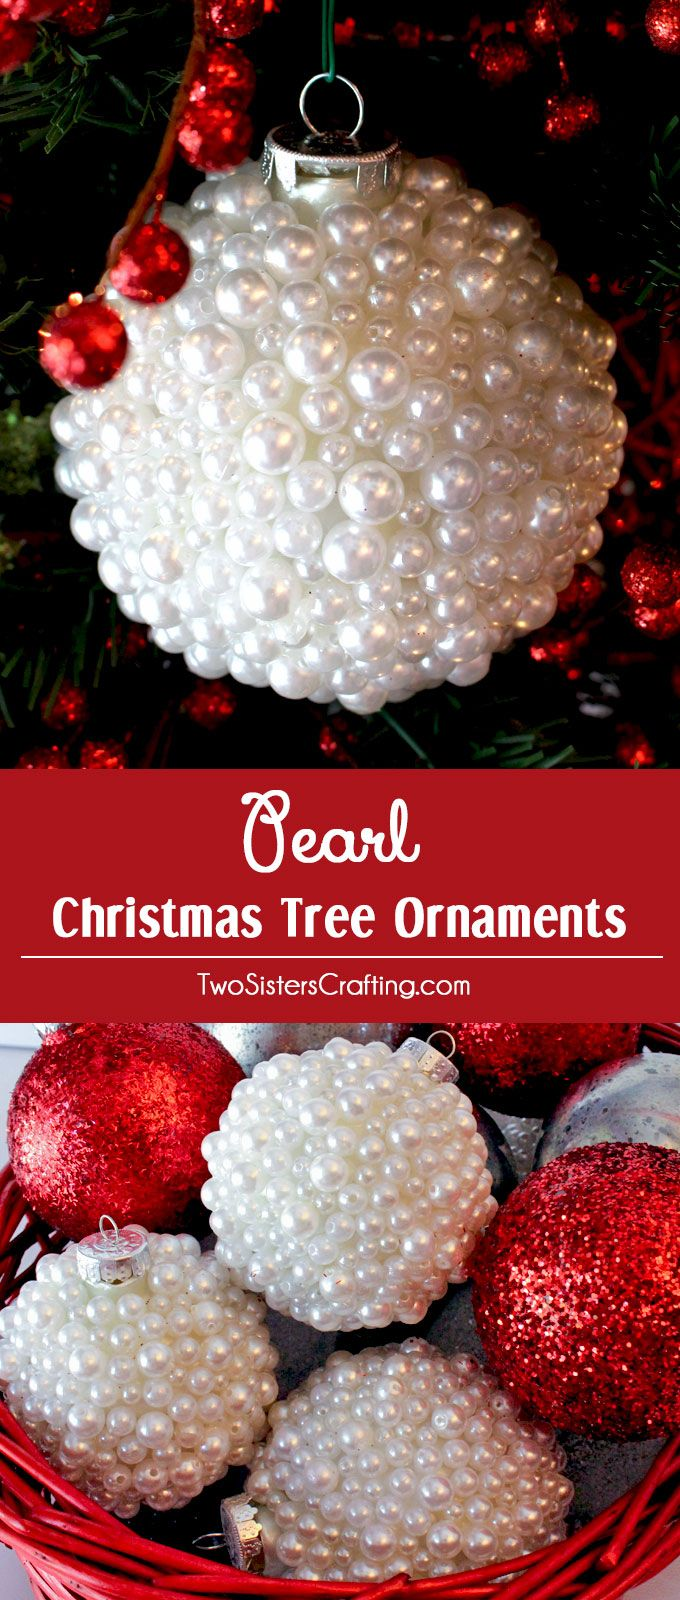 Themed christmas ornaments - Pearl Christmas Tree Ornaments